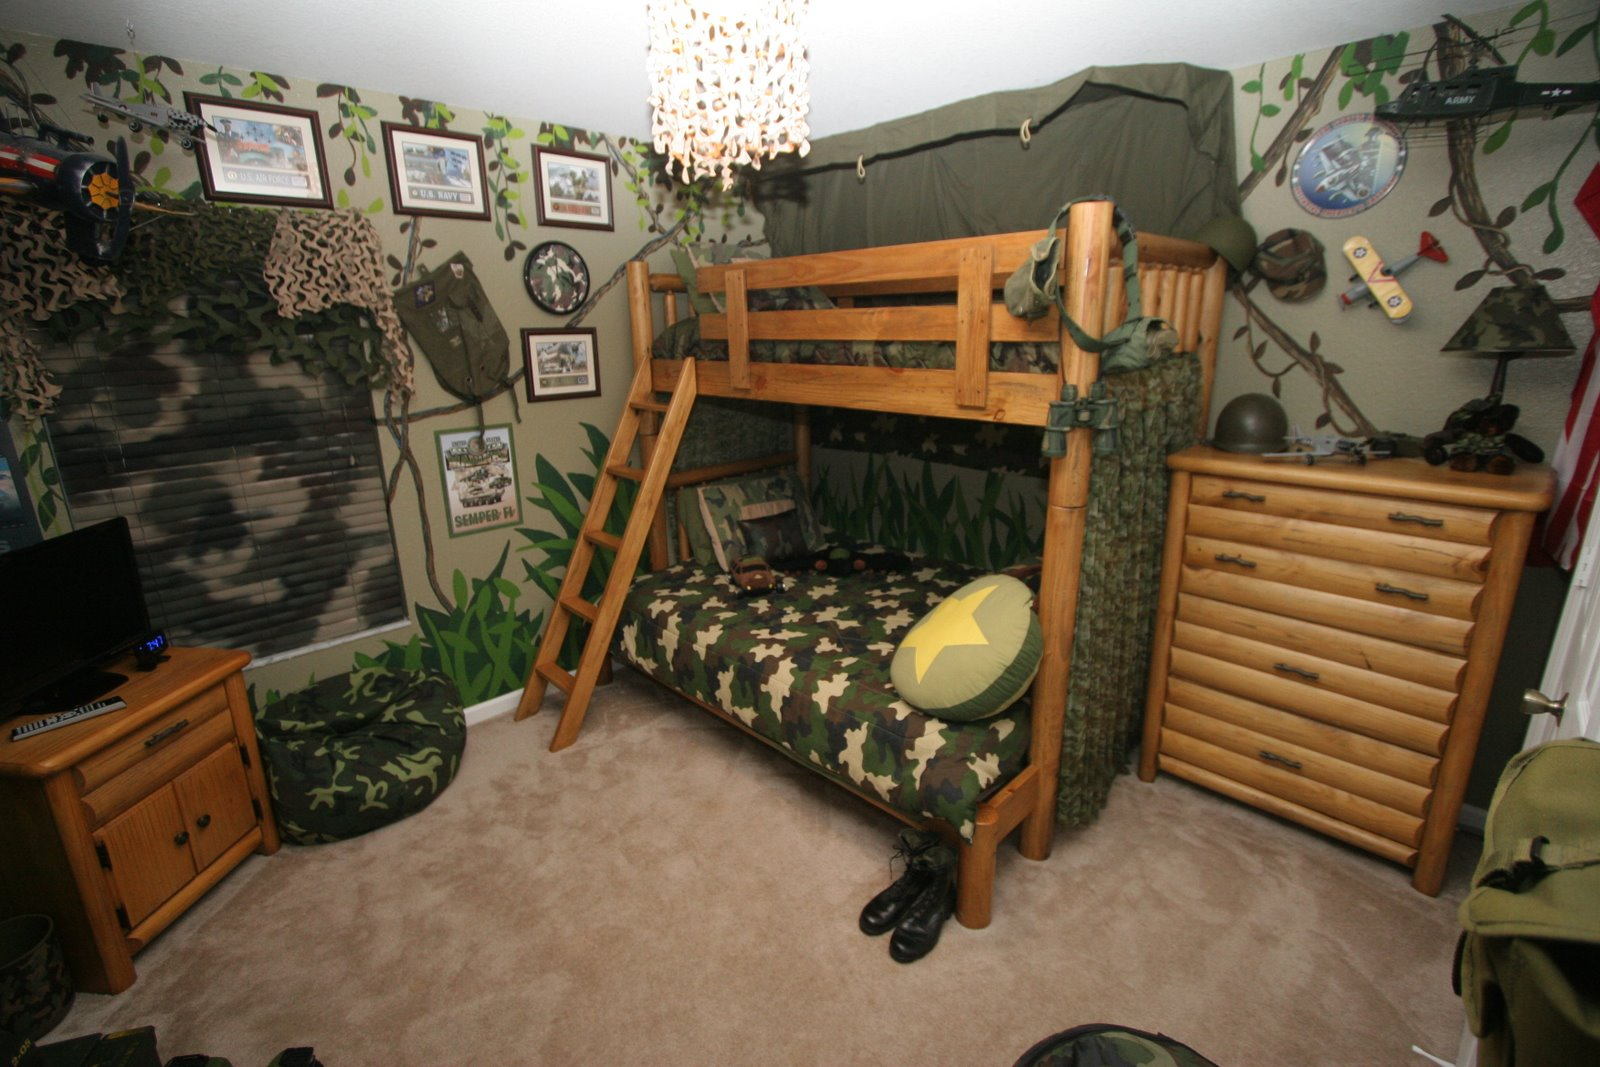 Green walls heightened the theme of military in this bedroom